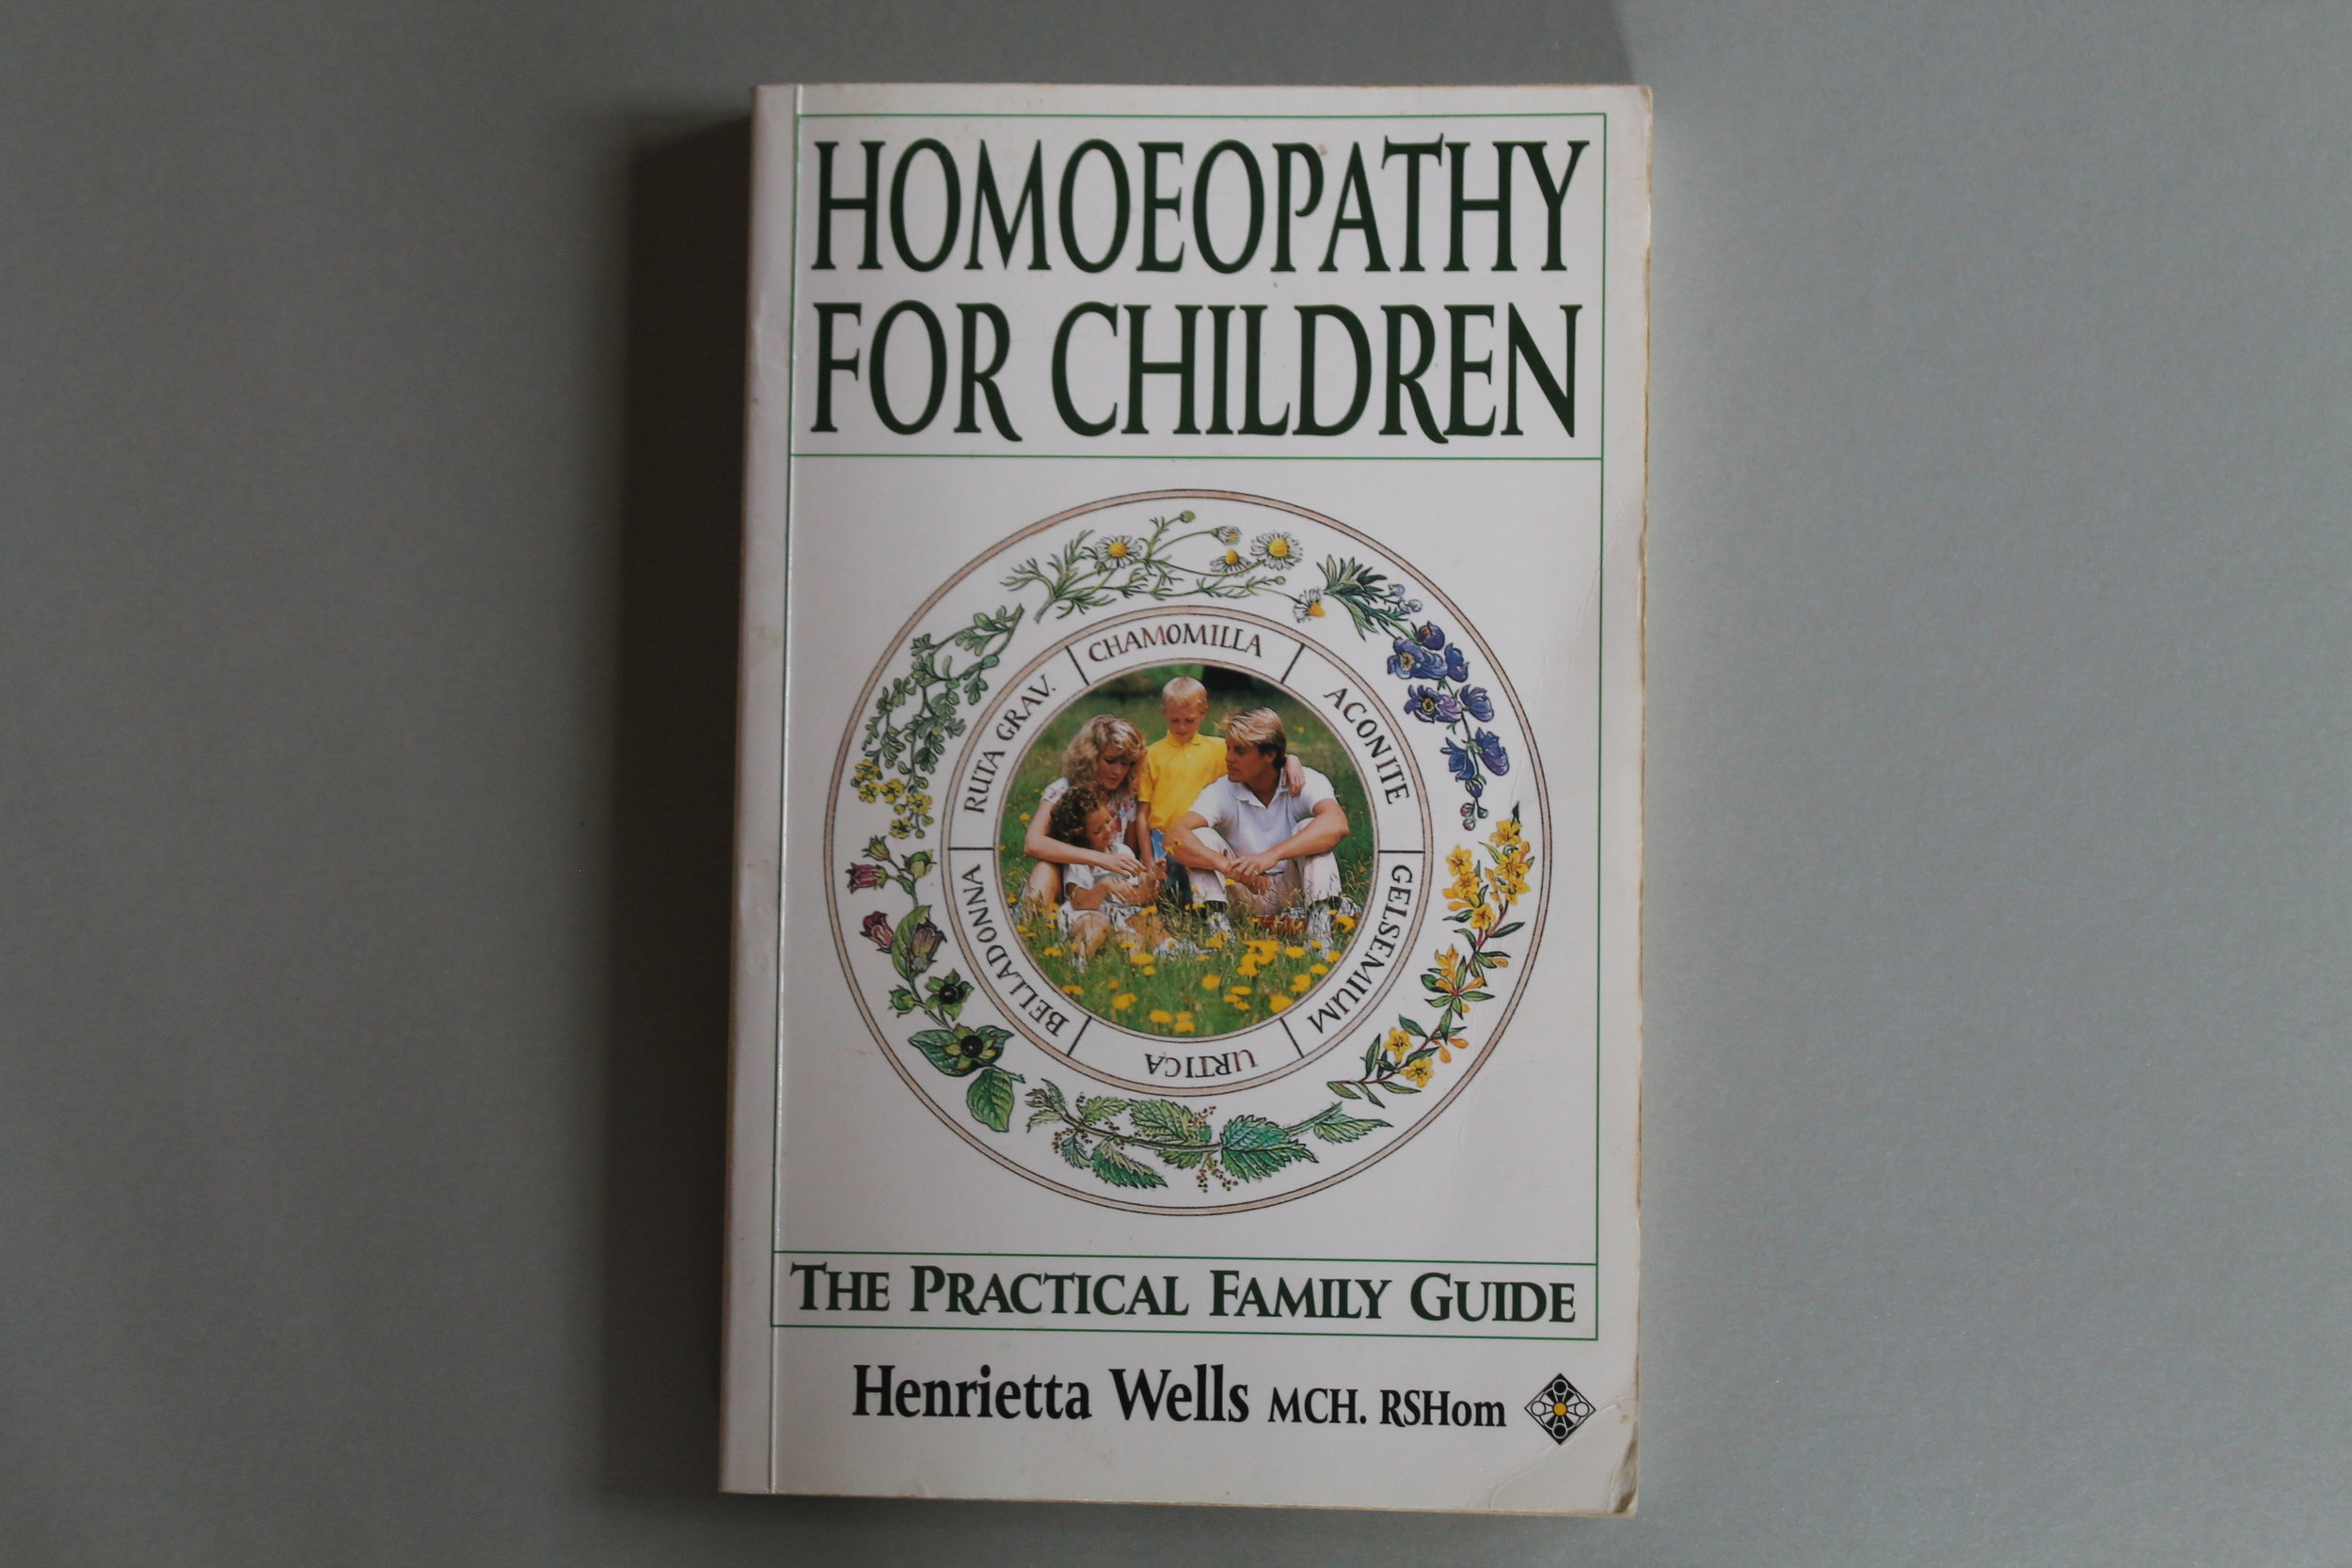 Homeopathy For Children The Practical Family Guide by Henrietta Wells